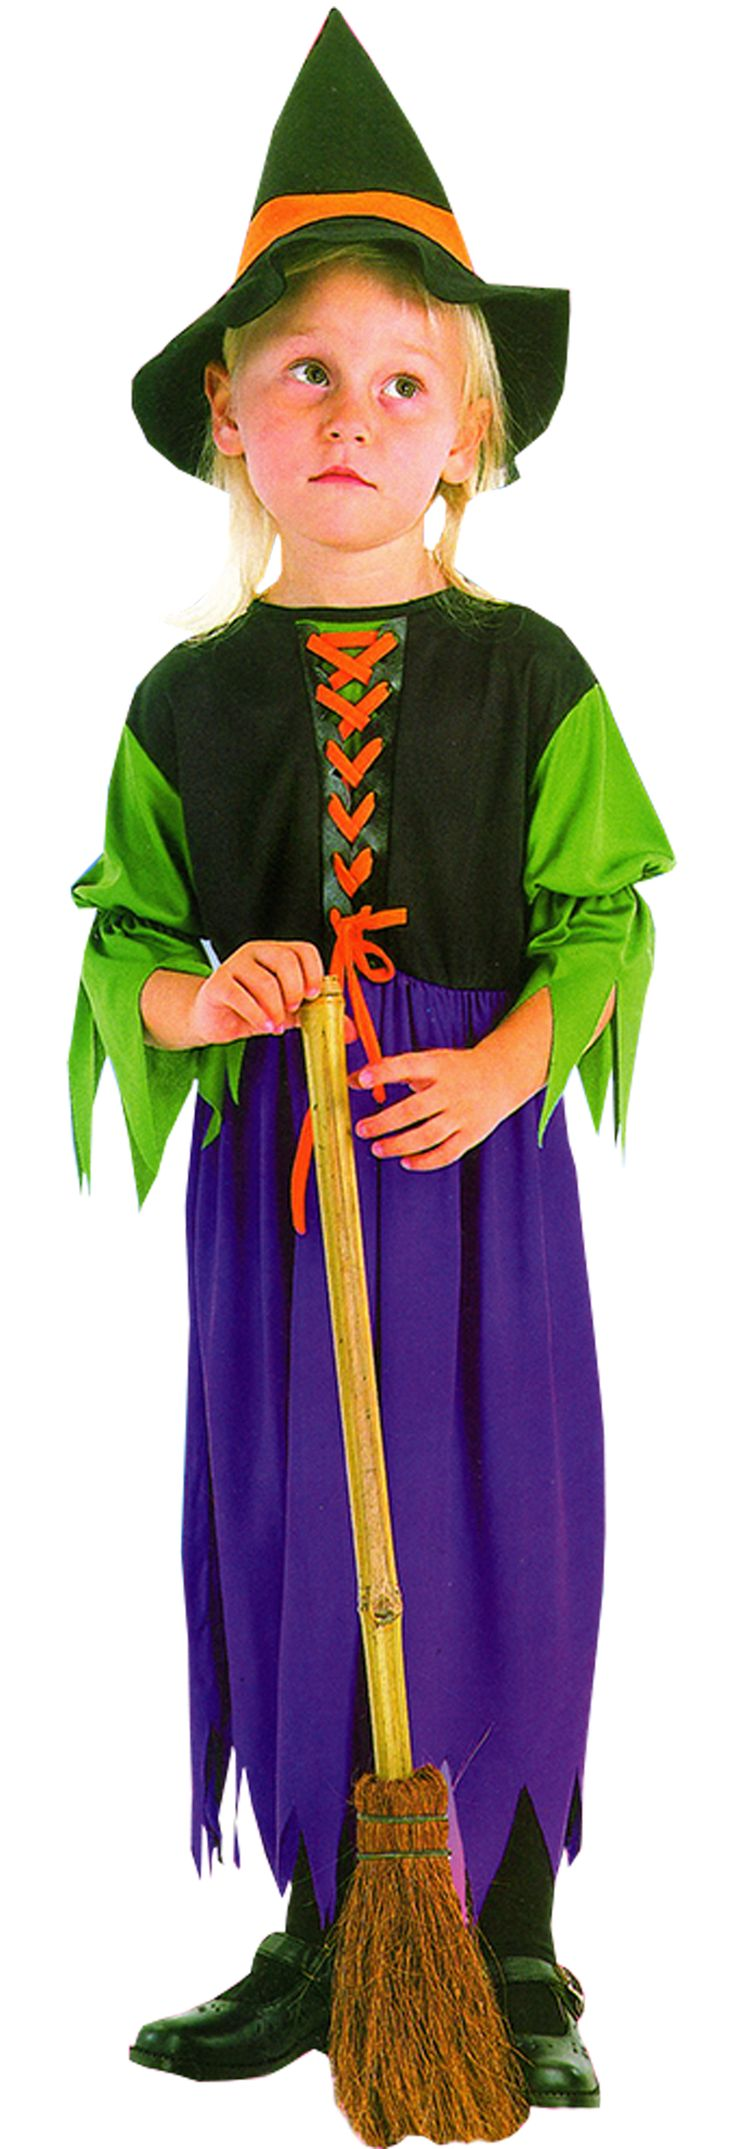 Storybook Witch Costume, Includes; Robe and Hat. #Halloween #Fancy #Dress #Costume #Girls #Toddler #Outfit #Witch